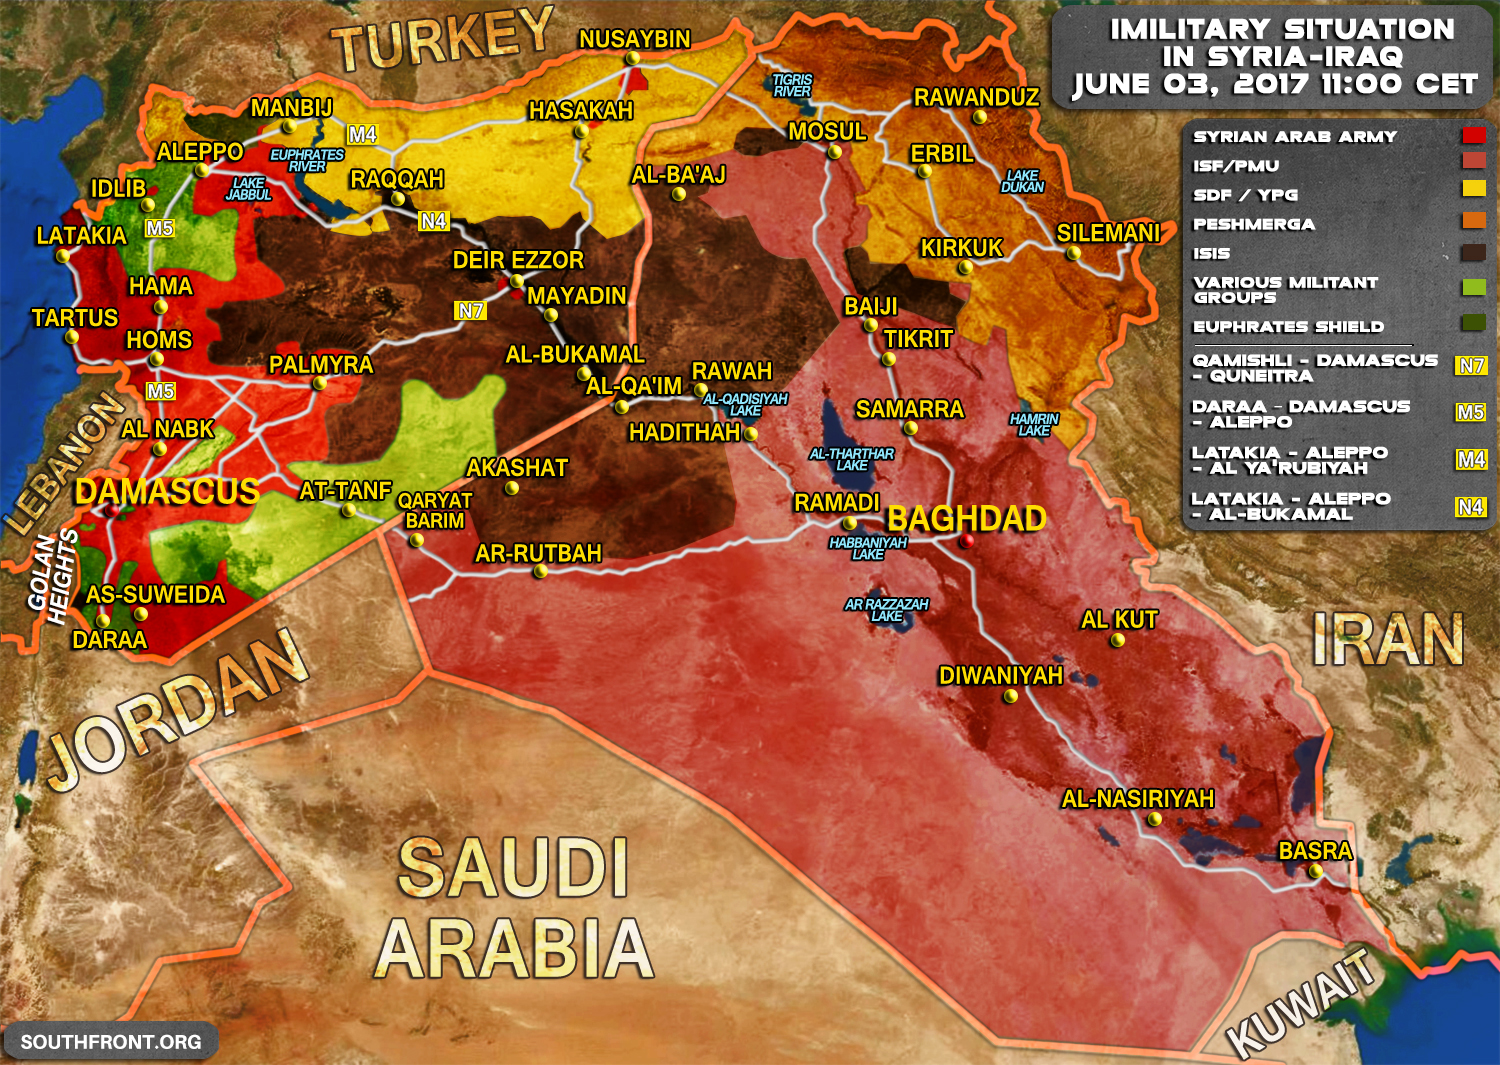 Situation in syria and iraq on june 3 2017 map update military situation in syria and iraq on june 3 2017 map update gumiabroncs Image collections